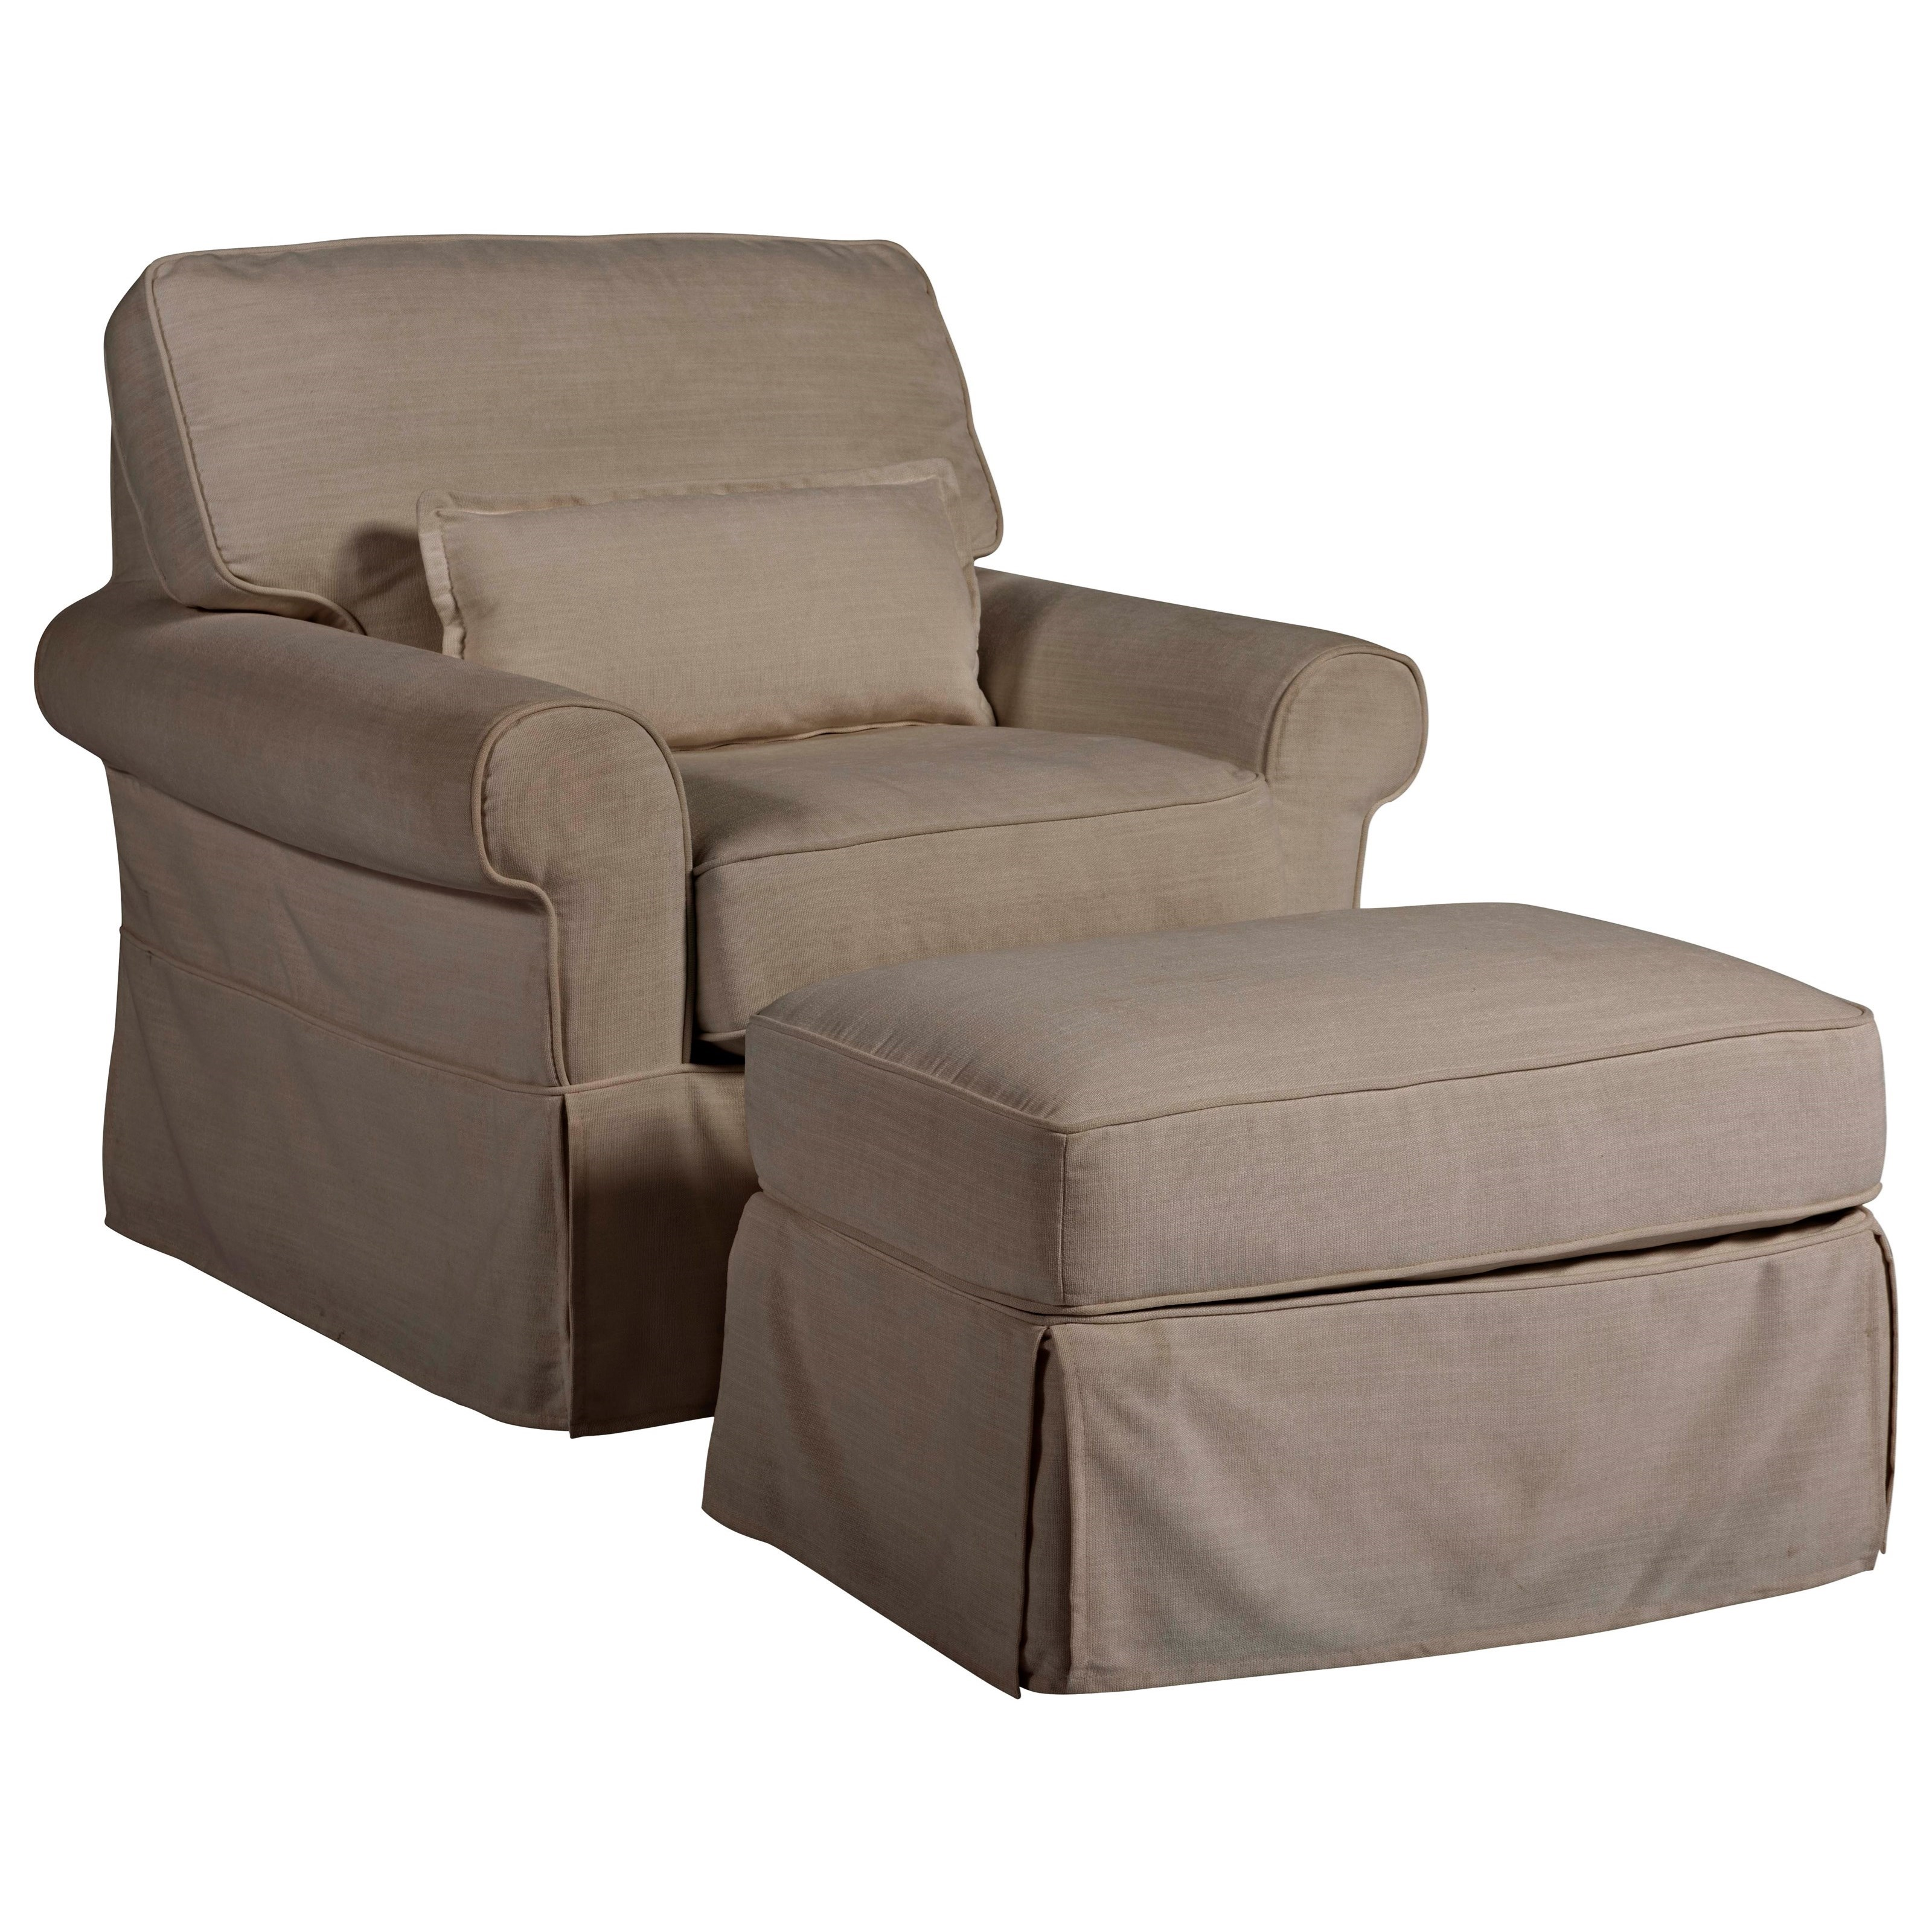 Coastal Living Home - Escape Ventura Chair and Ottoman by Universal at Baer's Furniture